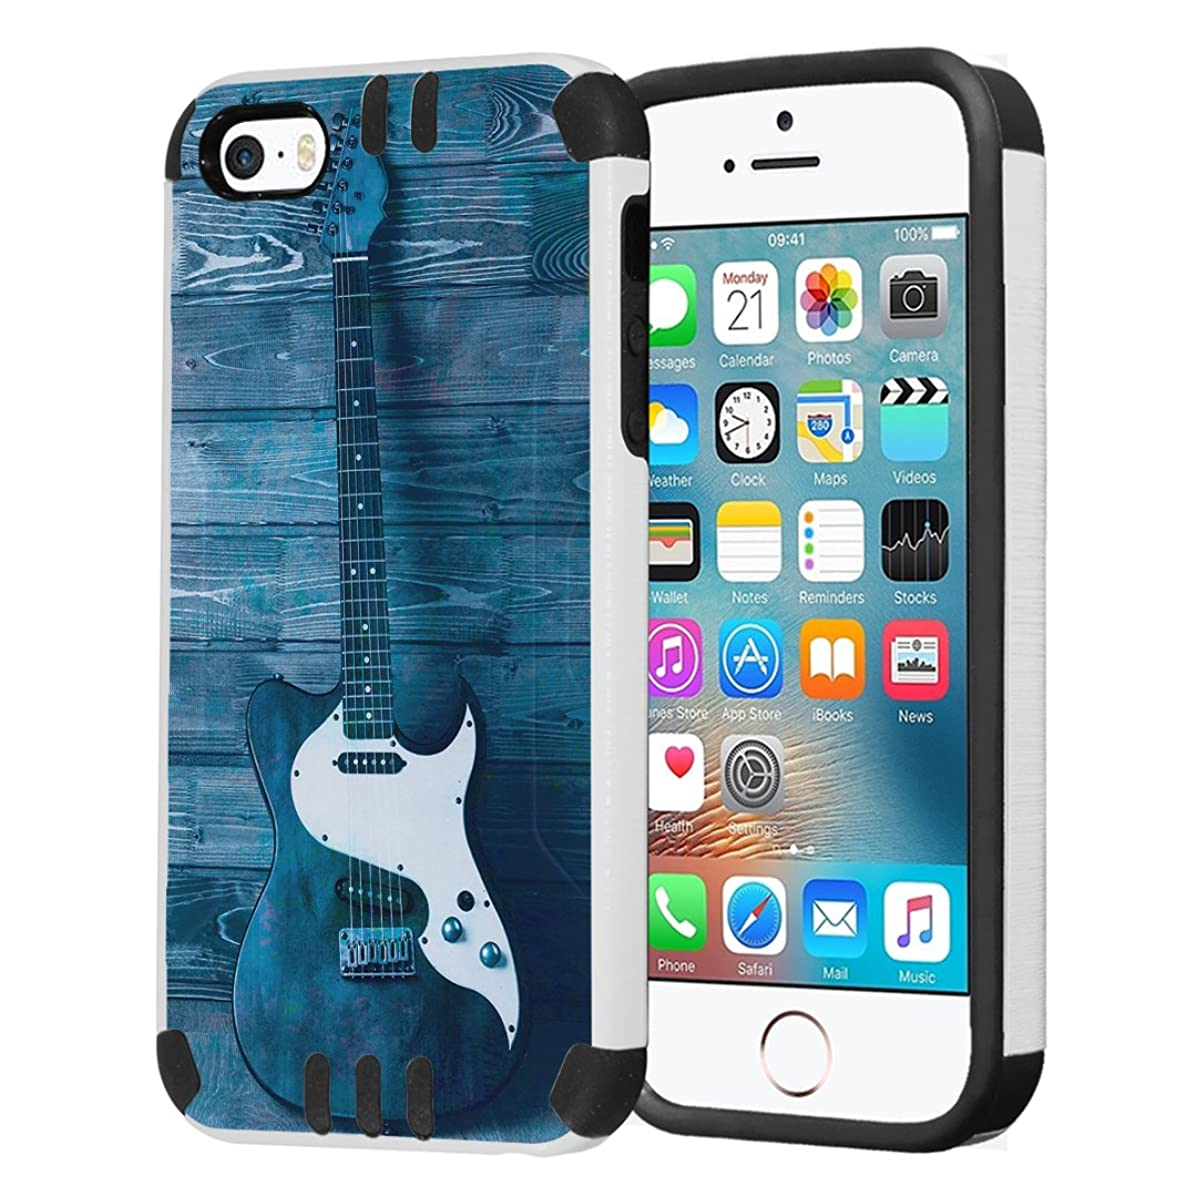 Capsule Case Compatible with iPhone 5, iPhone 5S, iPhone SE [Hybrid Dual Layer Slim Defender Armor Combat Case Black White] - (Guitar)